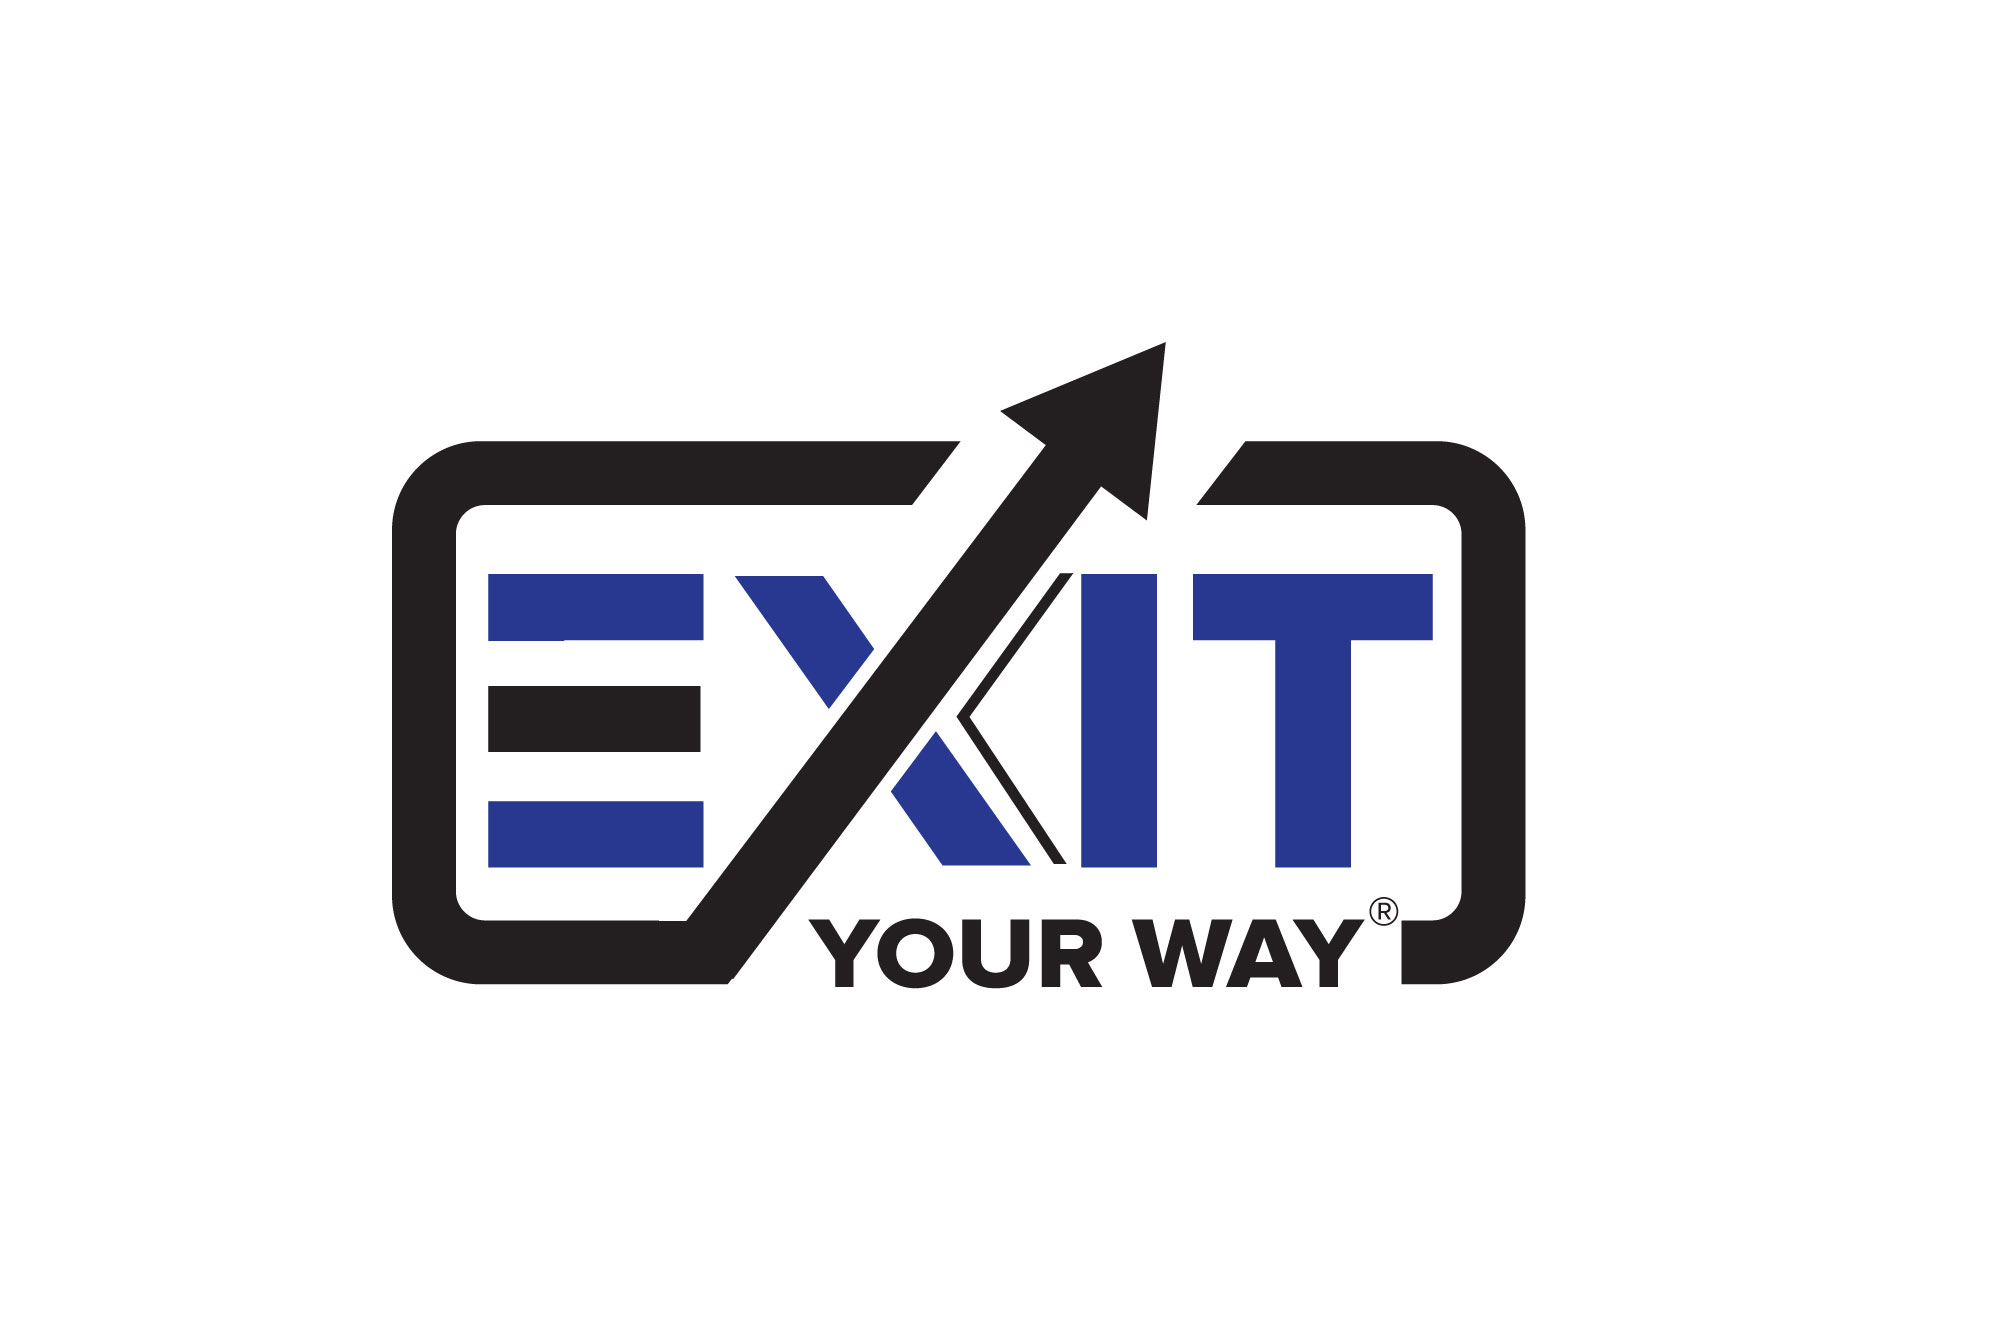 THE EXIT YOUR WAY® PARTNERS WELCOMES DALE RICHARDS TO THE TEAM